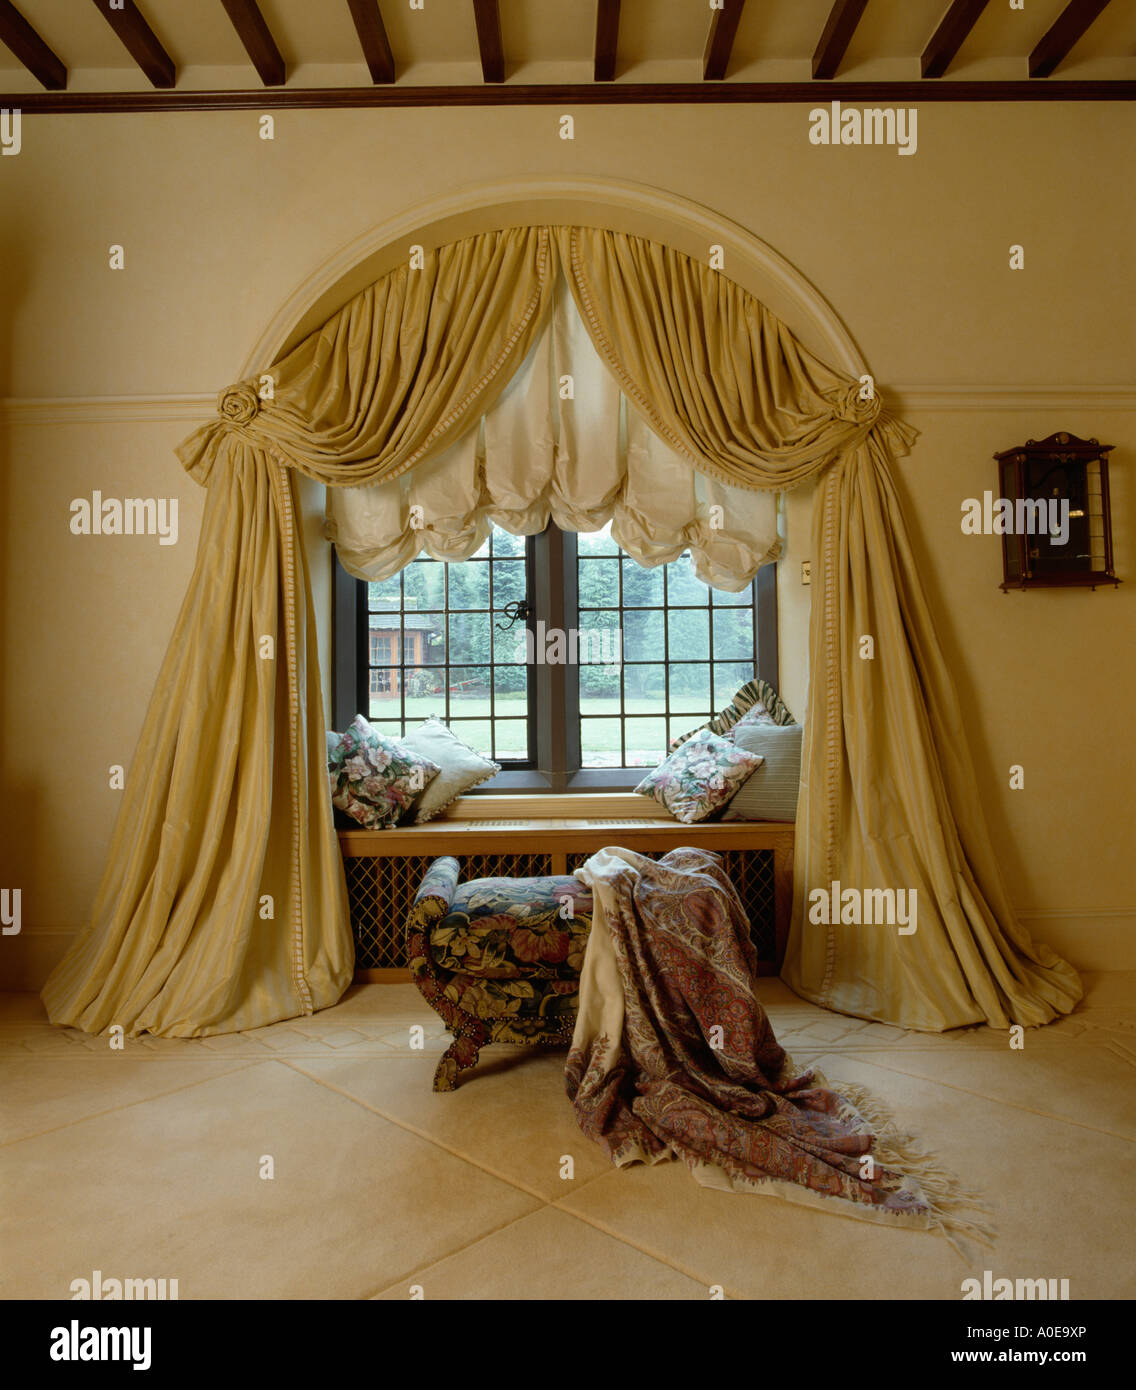 Cream Draped Curtains And Festoon Blind On Arched Window In Bedroom With  Patterned Throw Onstool In Front Of Window